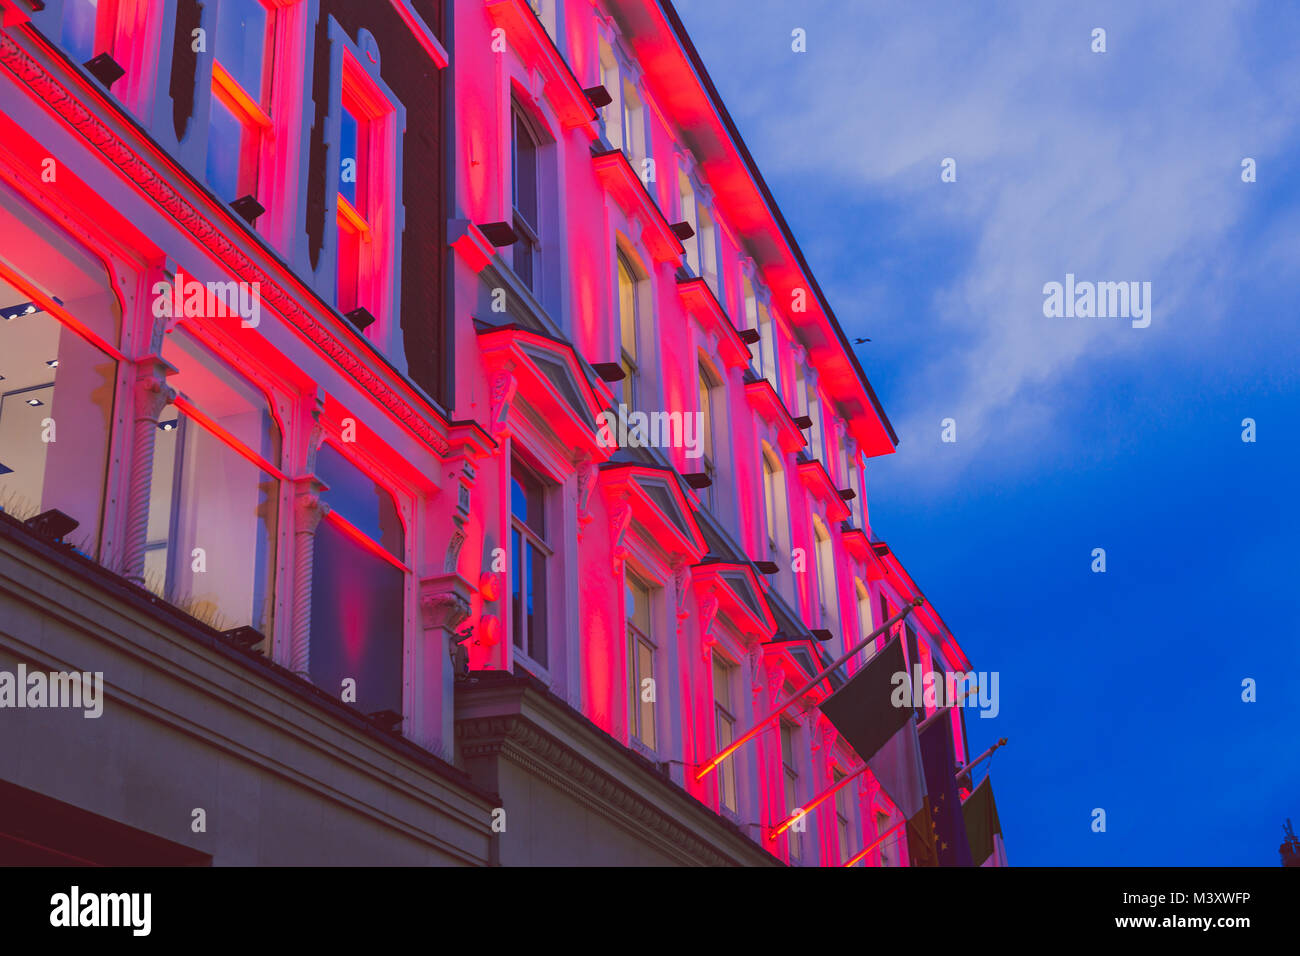 DUBLIN, IRELAND - February 10th, 2018: buildings in Grafton Street in Dublin city centre with colorful lighting - Stock Image